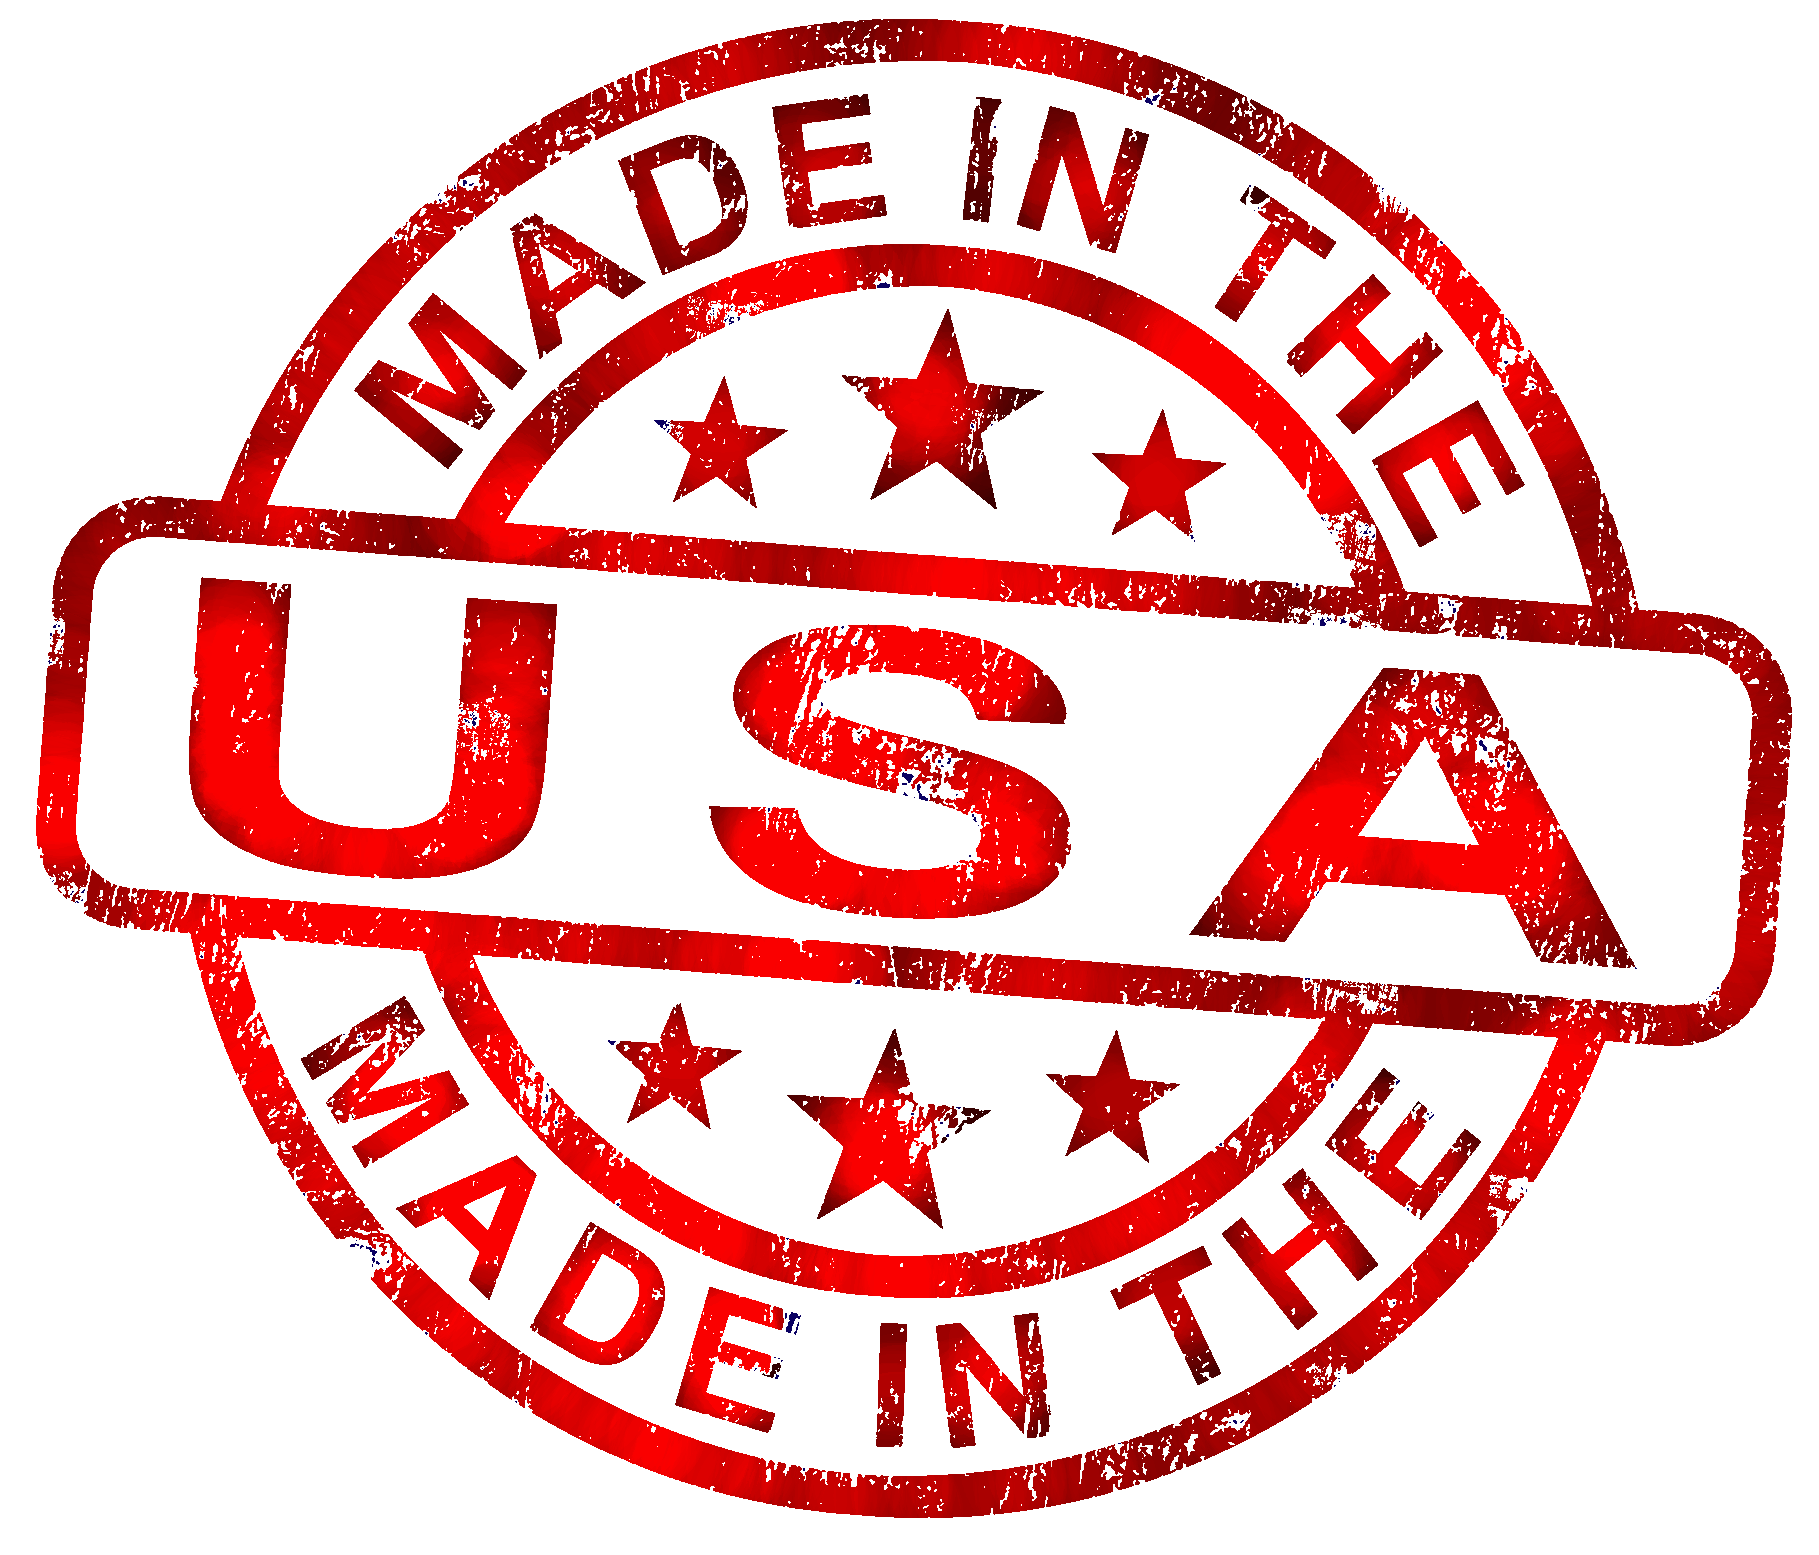 Made-in-the-USA-red